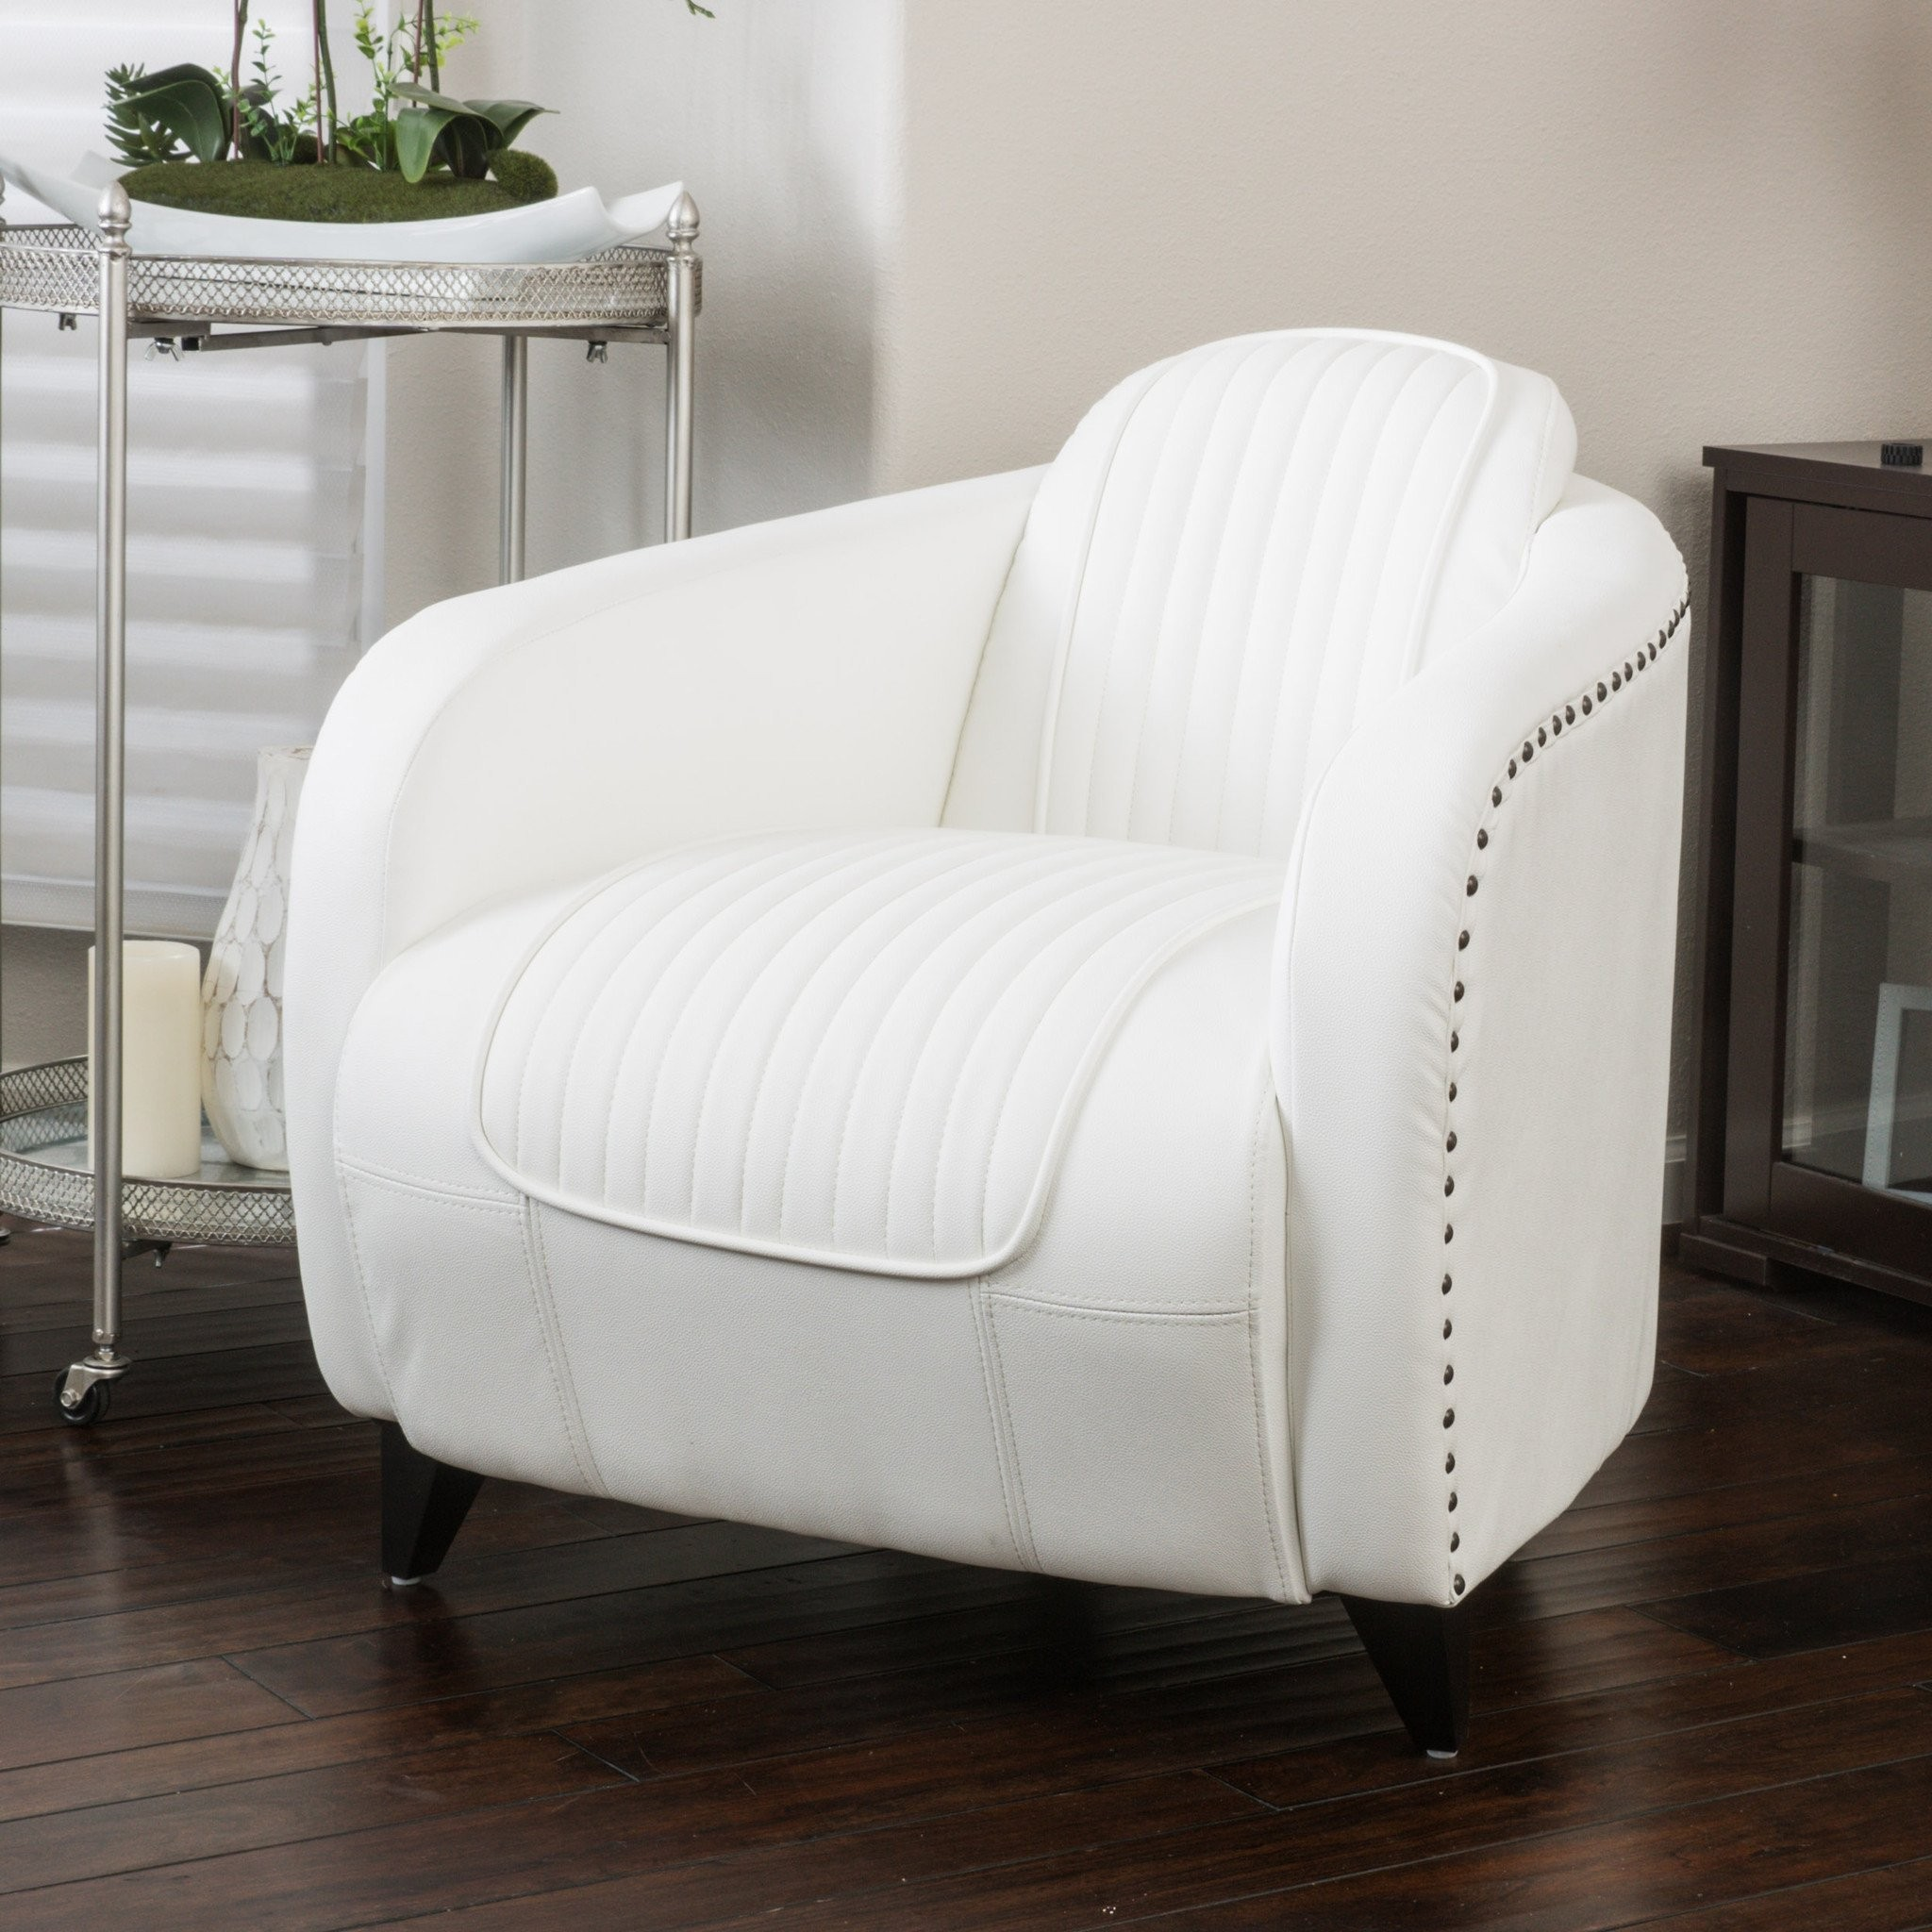 Lemay Channeled White Leather Club Chair